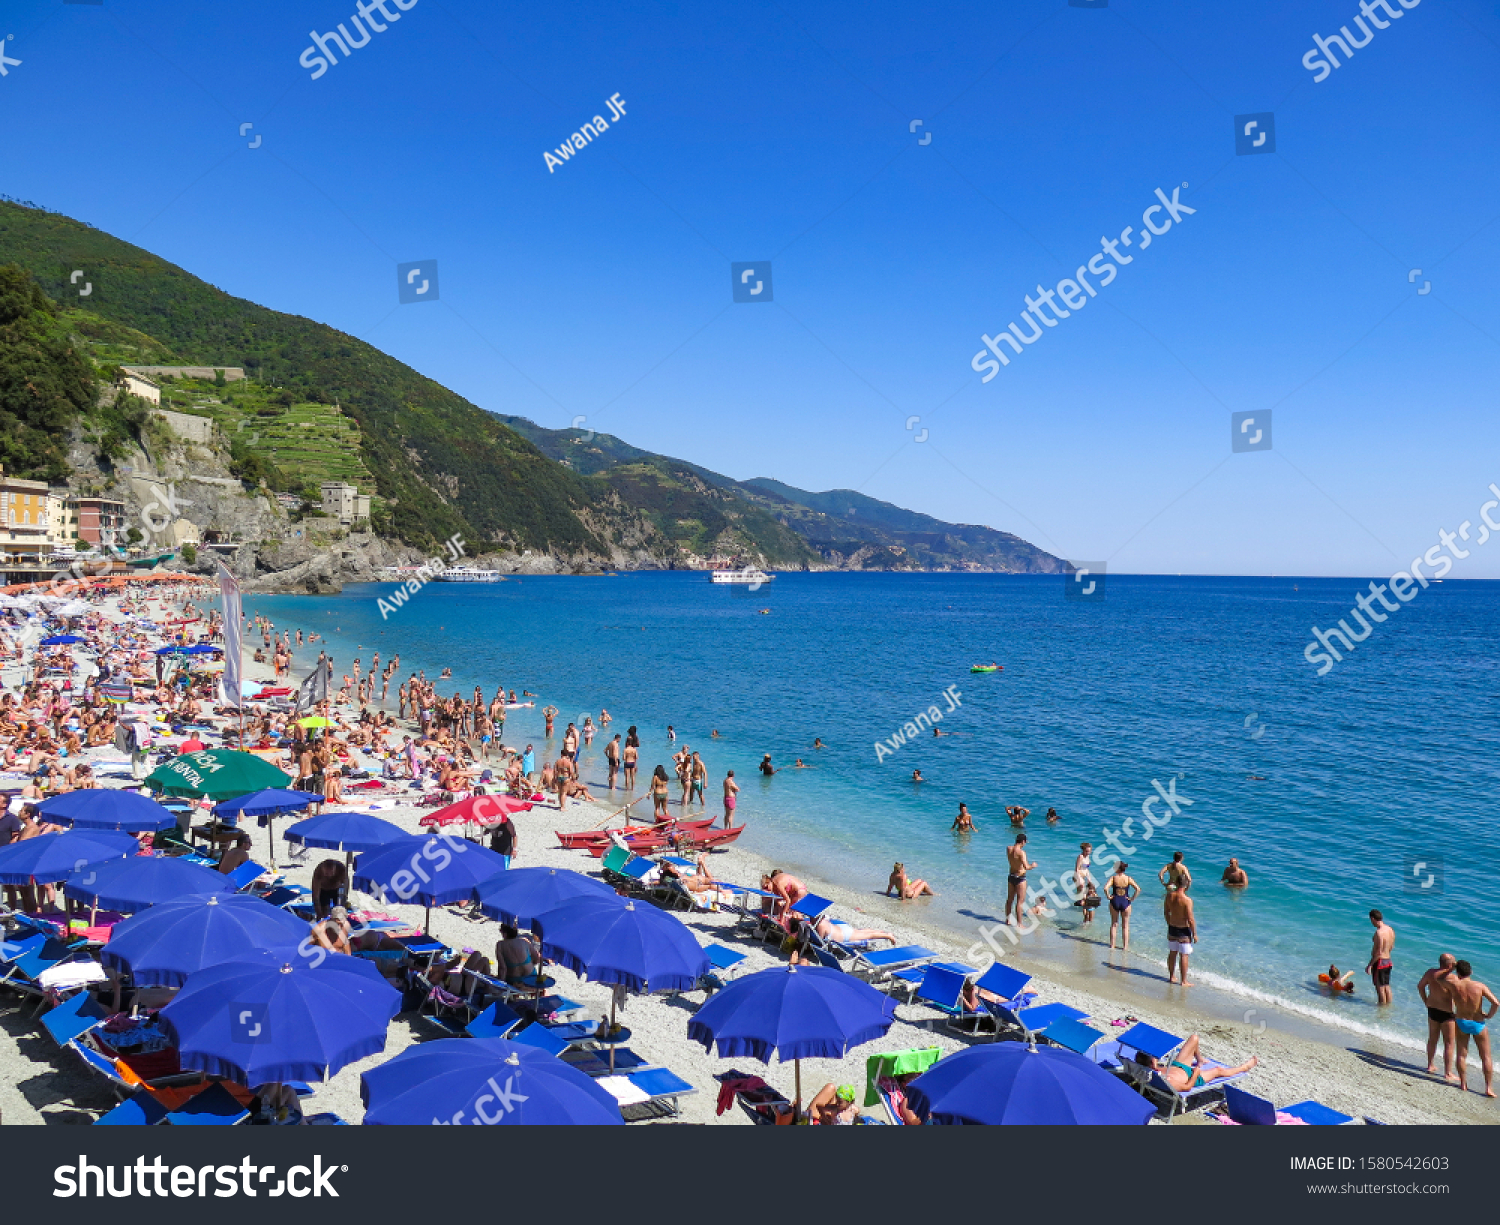 stock-photo-monterosso-italy-may-crowded